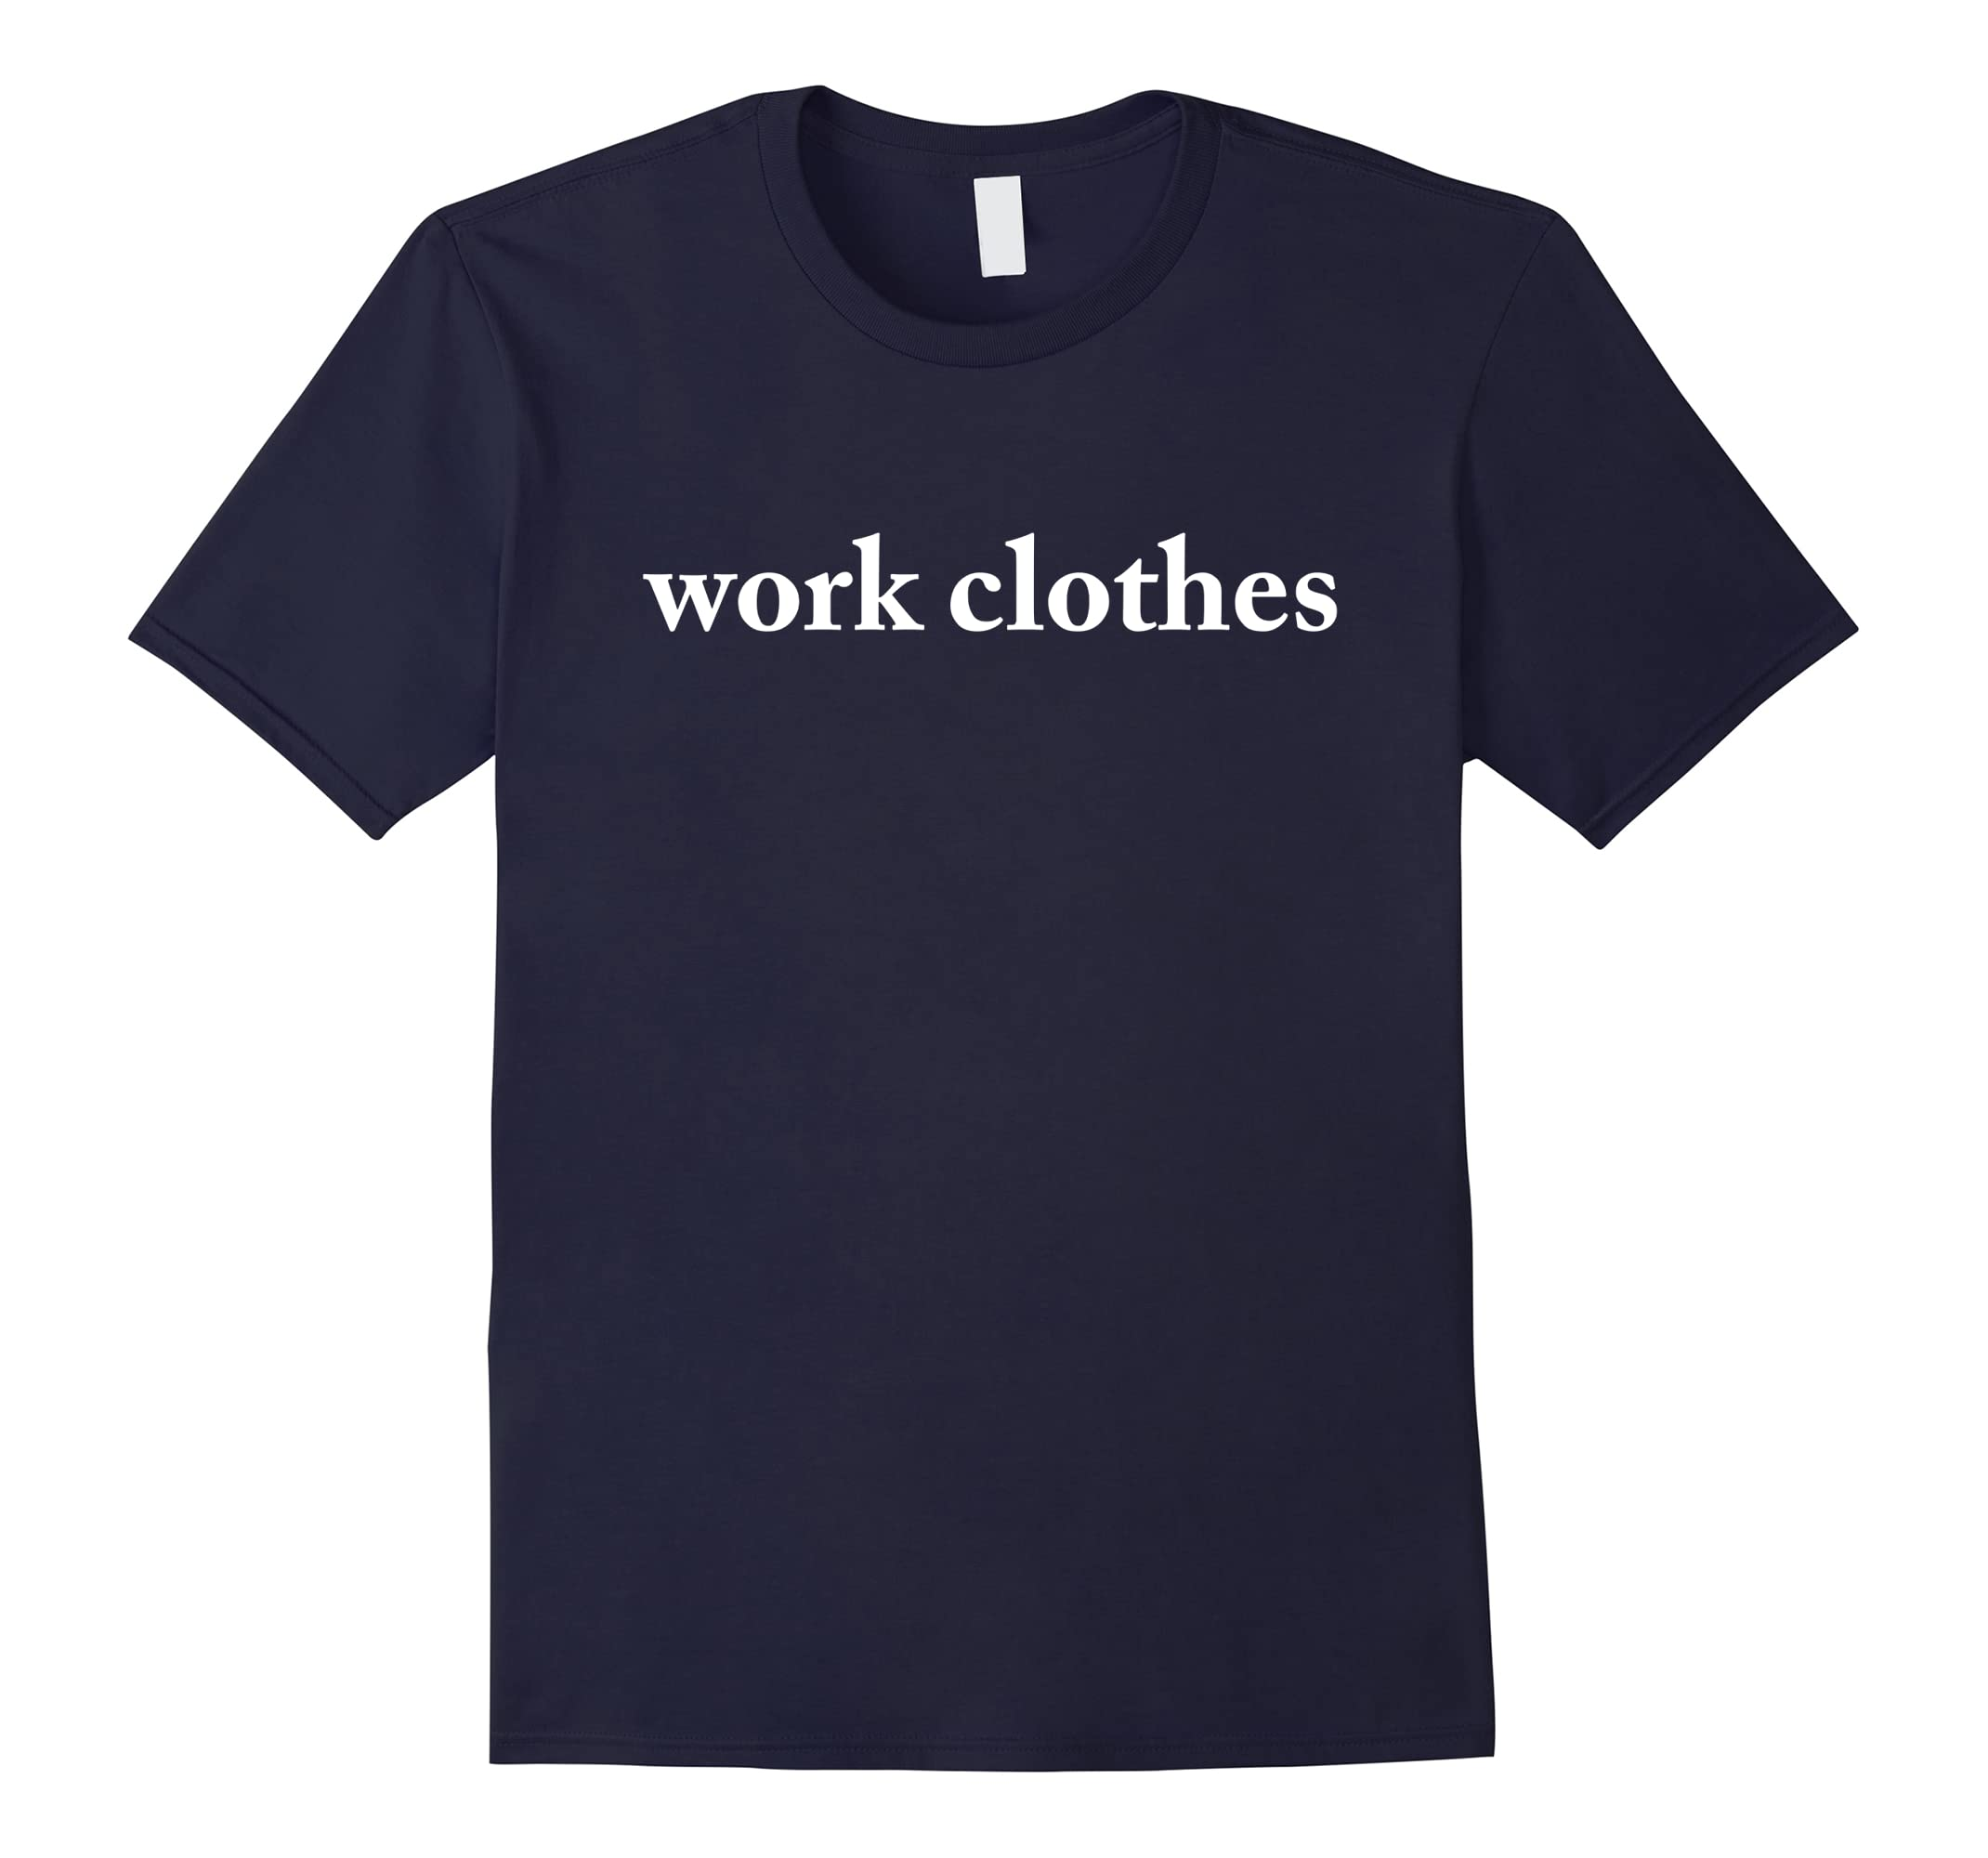 Wrinkle Fit Work Clothes Graphic T-Shirt (013020572018)-ah my shirt one gift